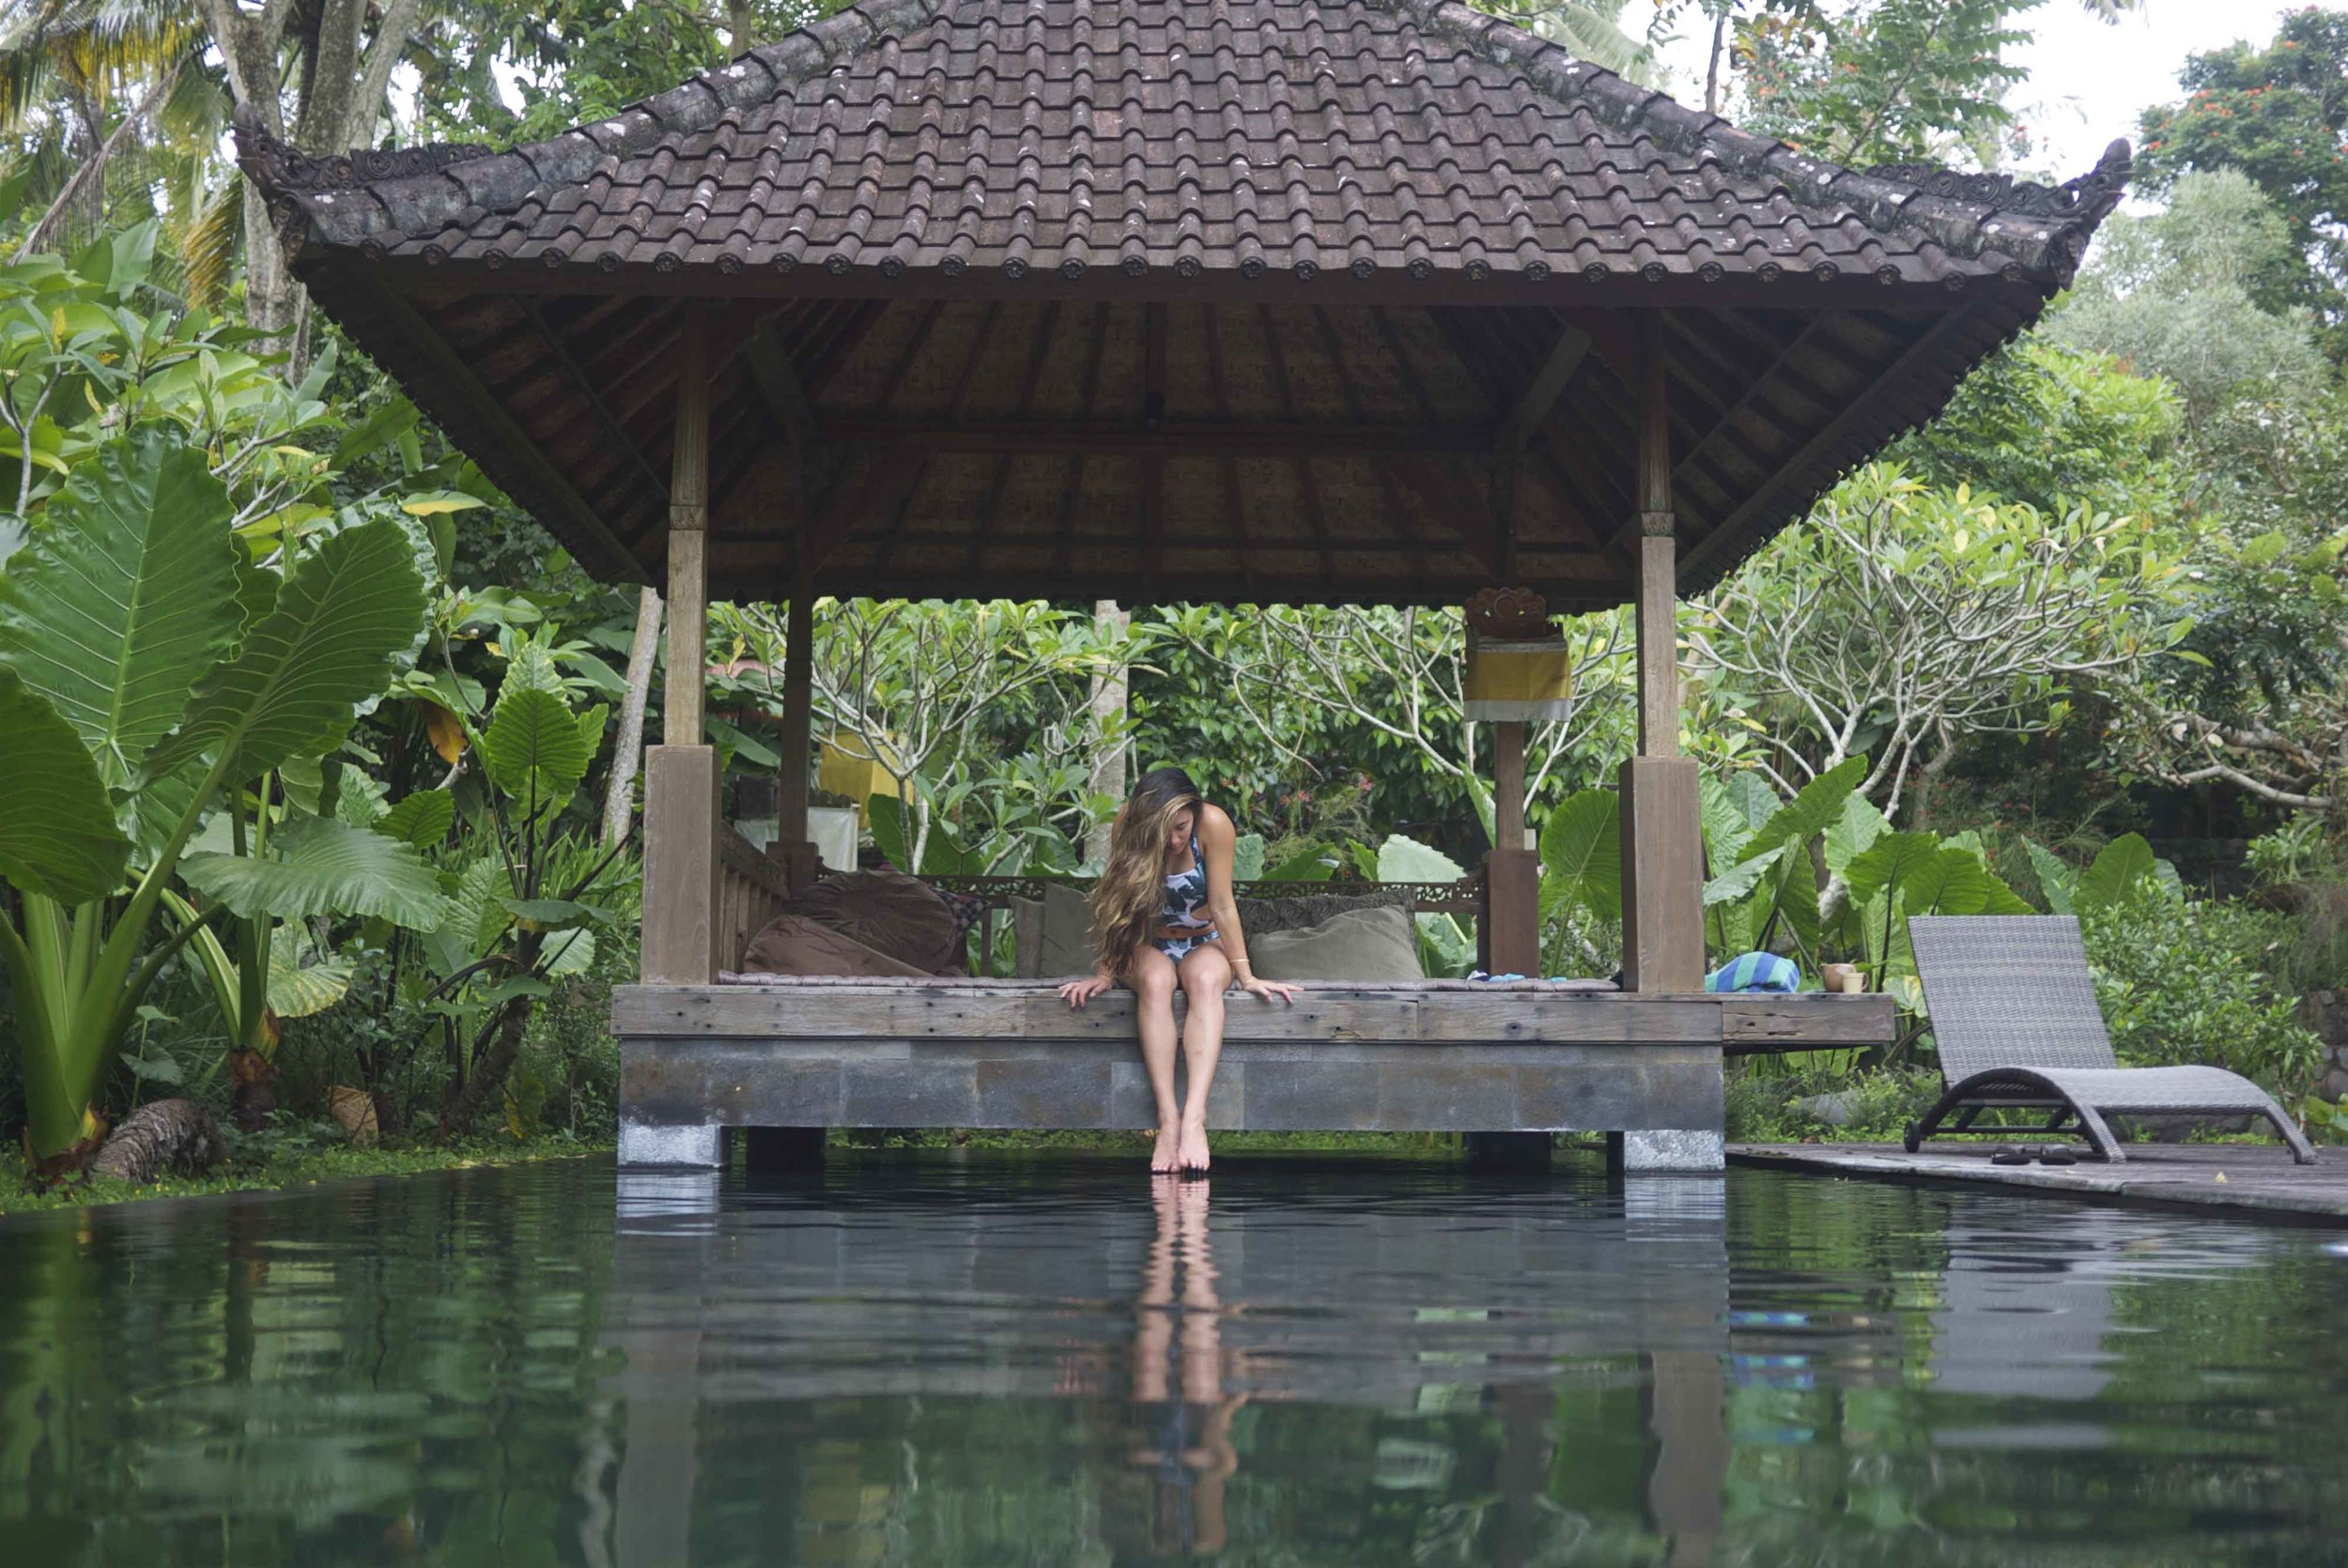 Finding a sanctuary in Indo